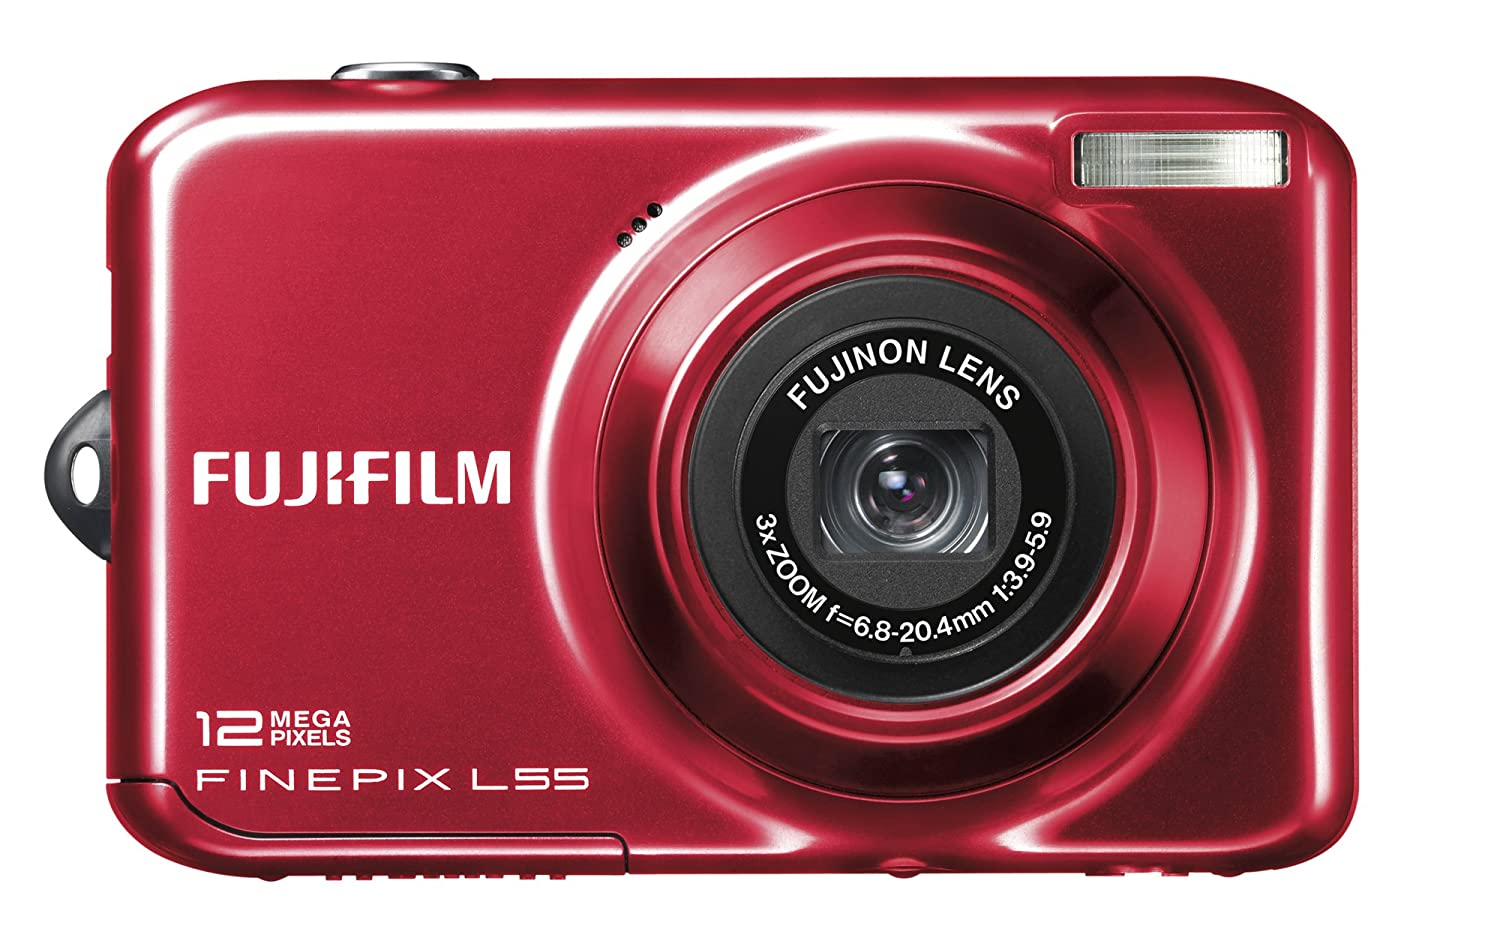 Fujifilm FinePix L55 Digital Camera - Red 2.4 inch LCD: Amazon.co.uk: Camera  & Photo